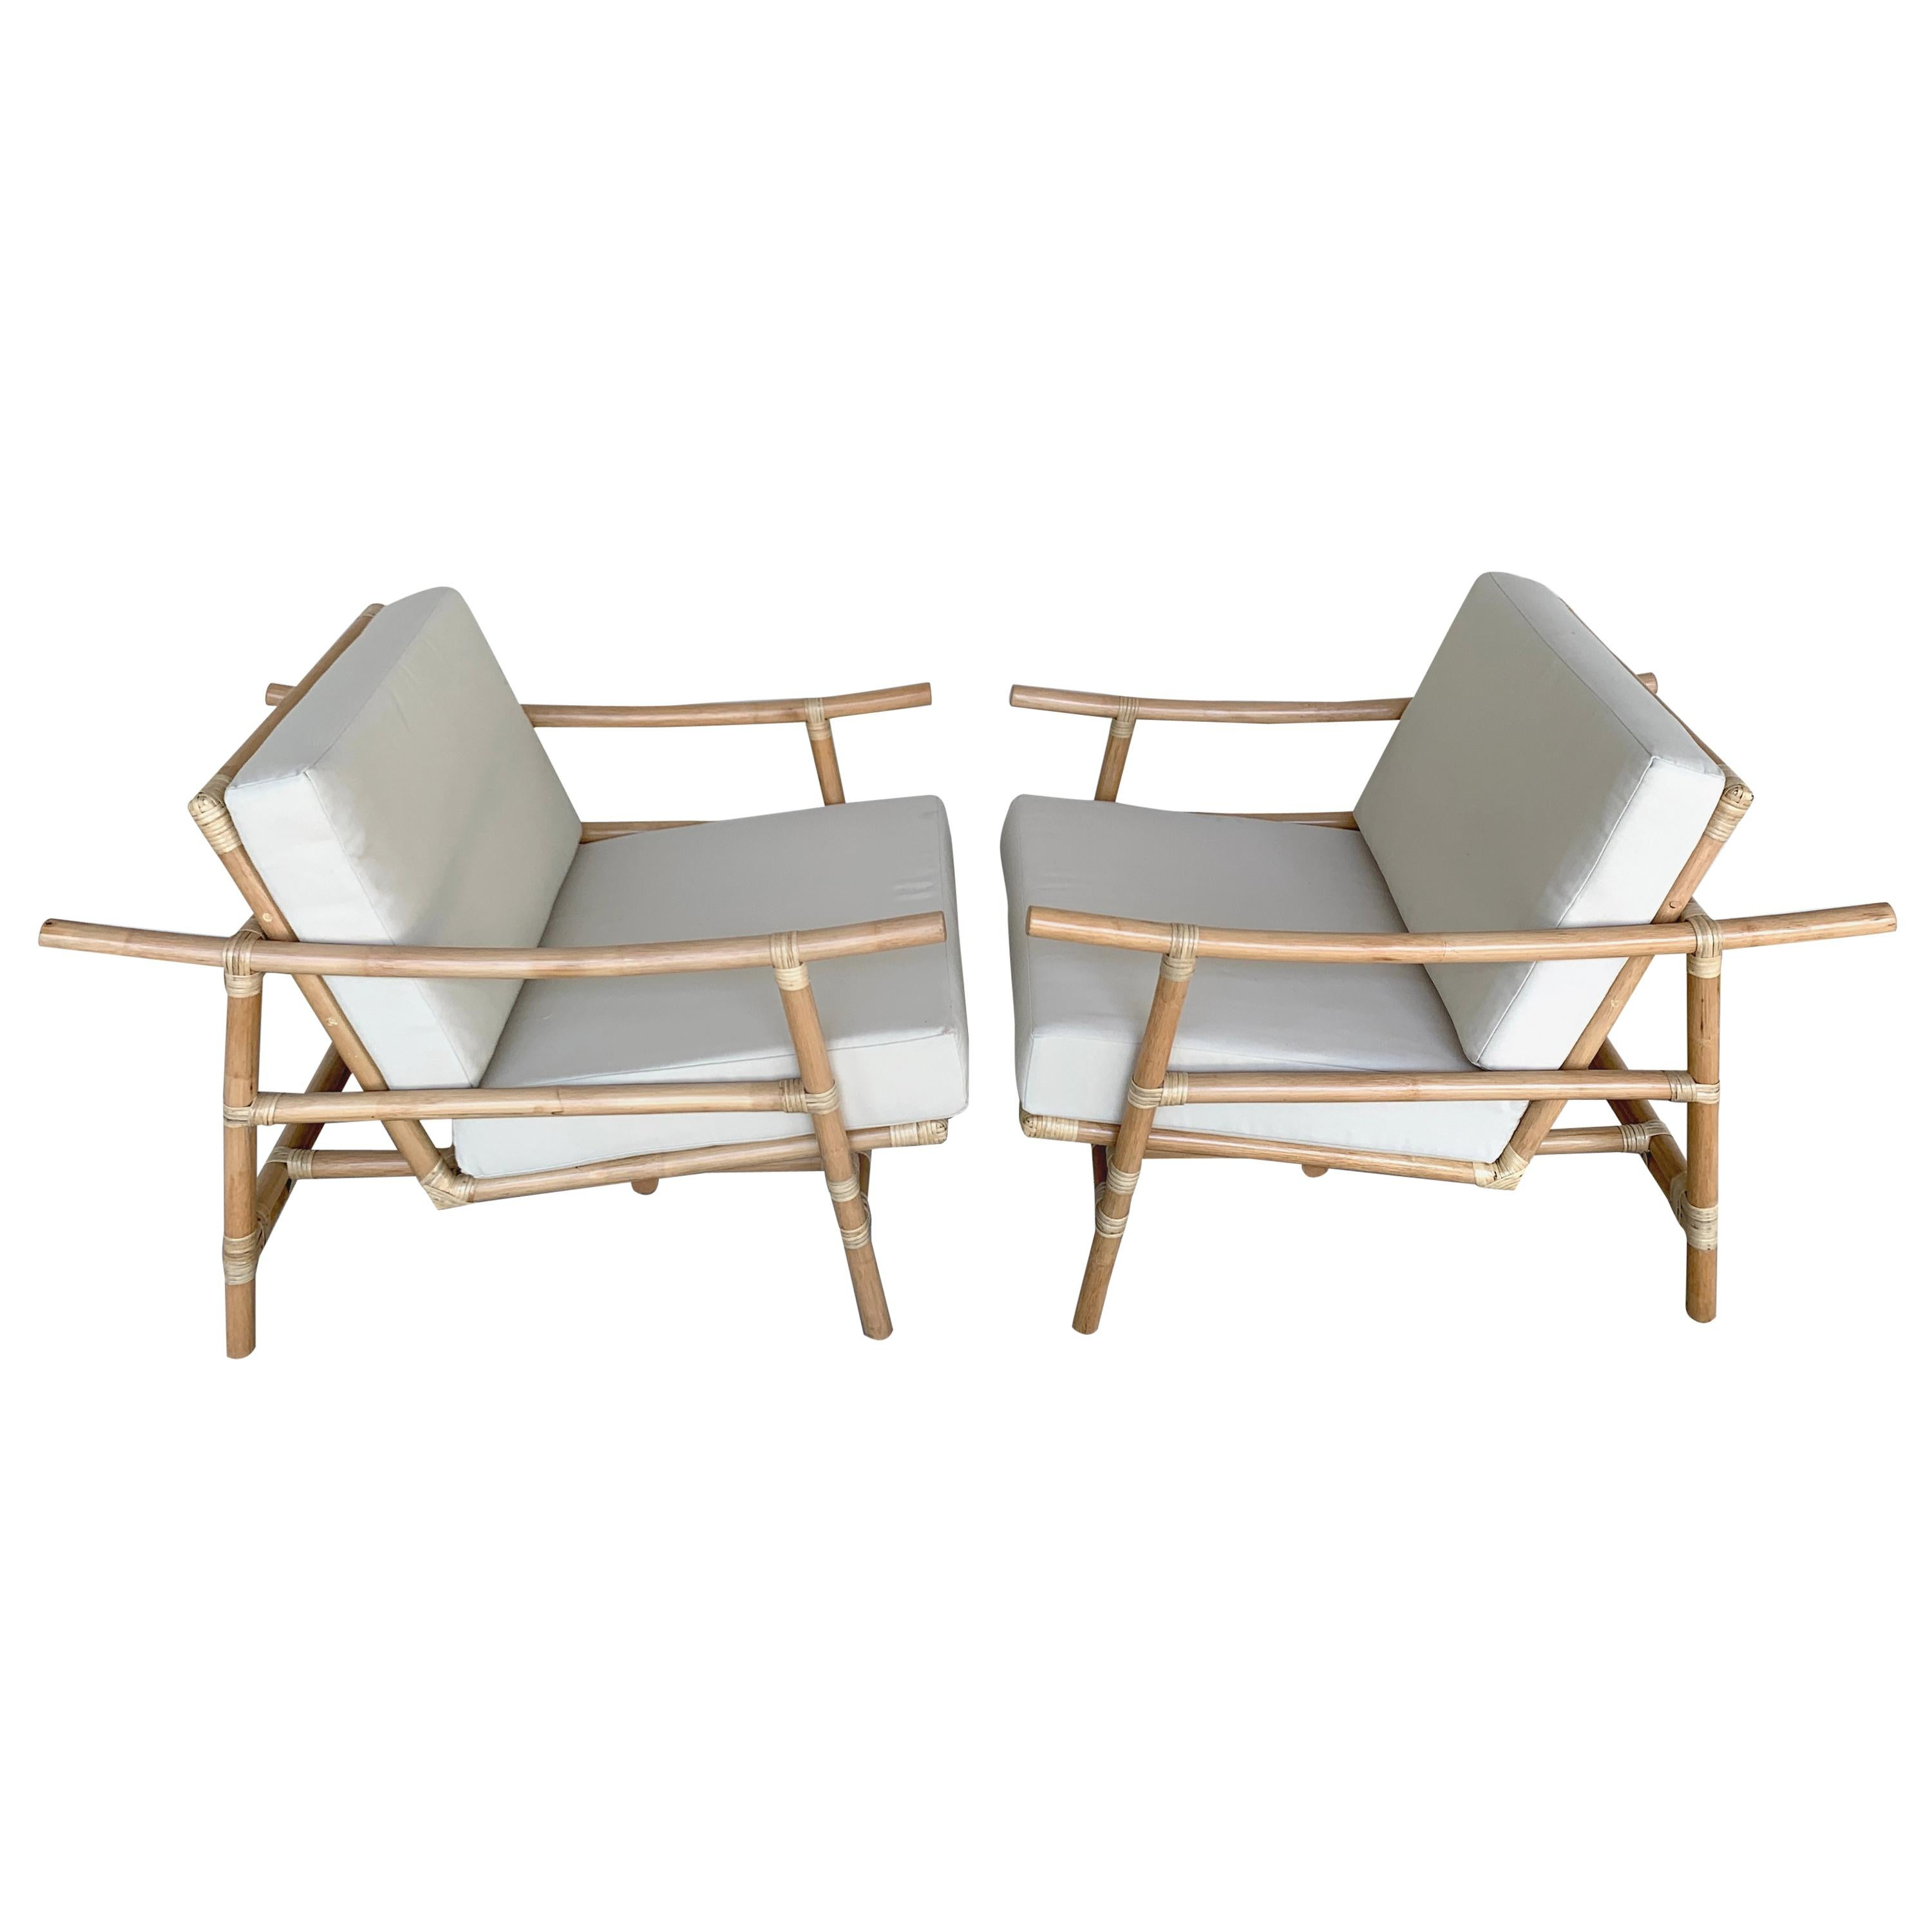 Pair of Ficks Reed Natural Rattan Lounge Club Chairs by John Wisner, Restored